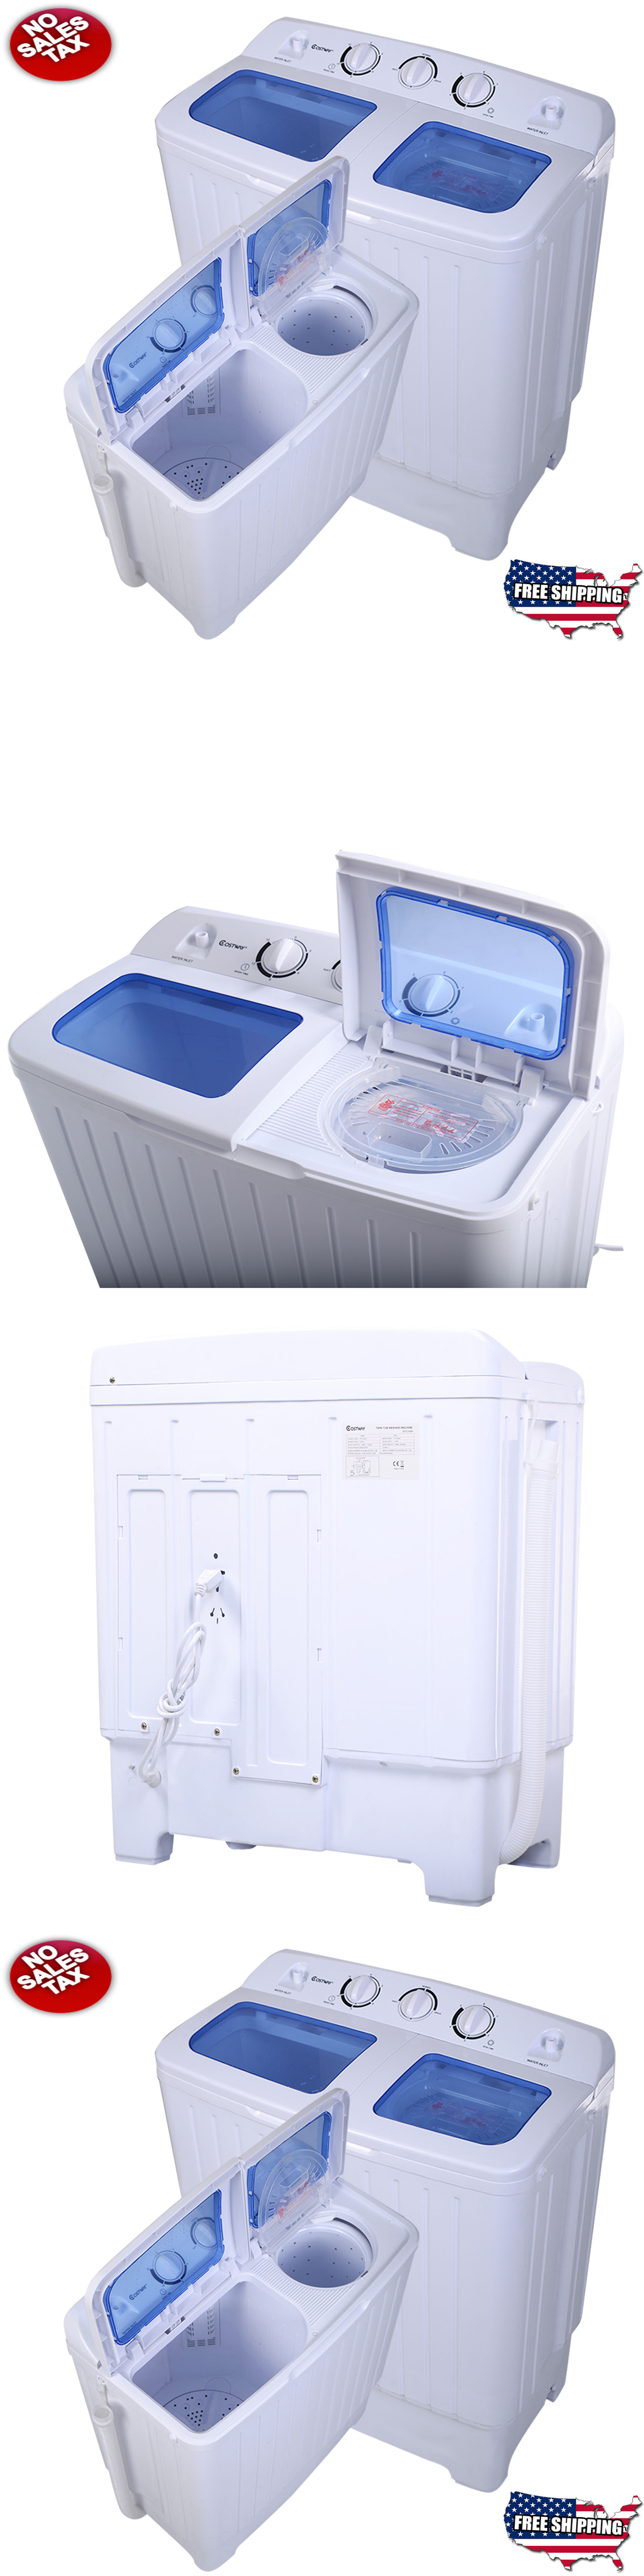 Washer And Dryer Sets 71257 All In One Portable Washing Machine Cleaner Dryer Apartment Wash With Images Apartment Washer Washing Machine Cleaner Portable Washing Machine